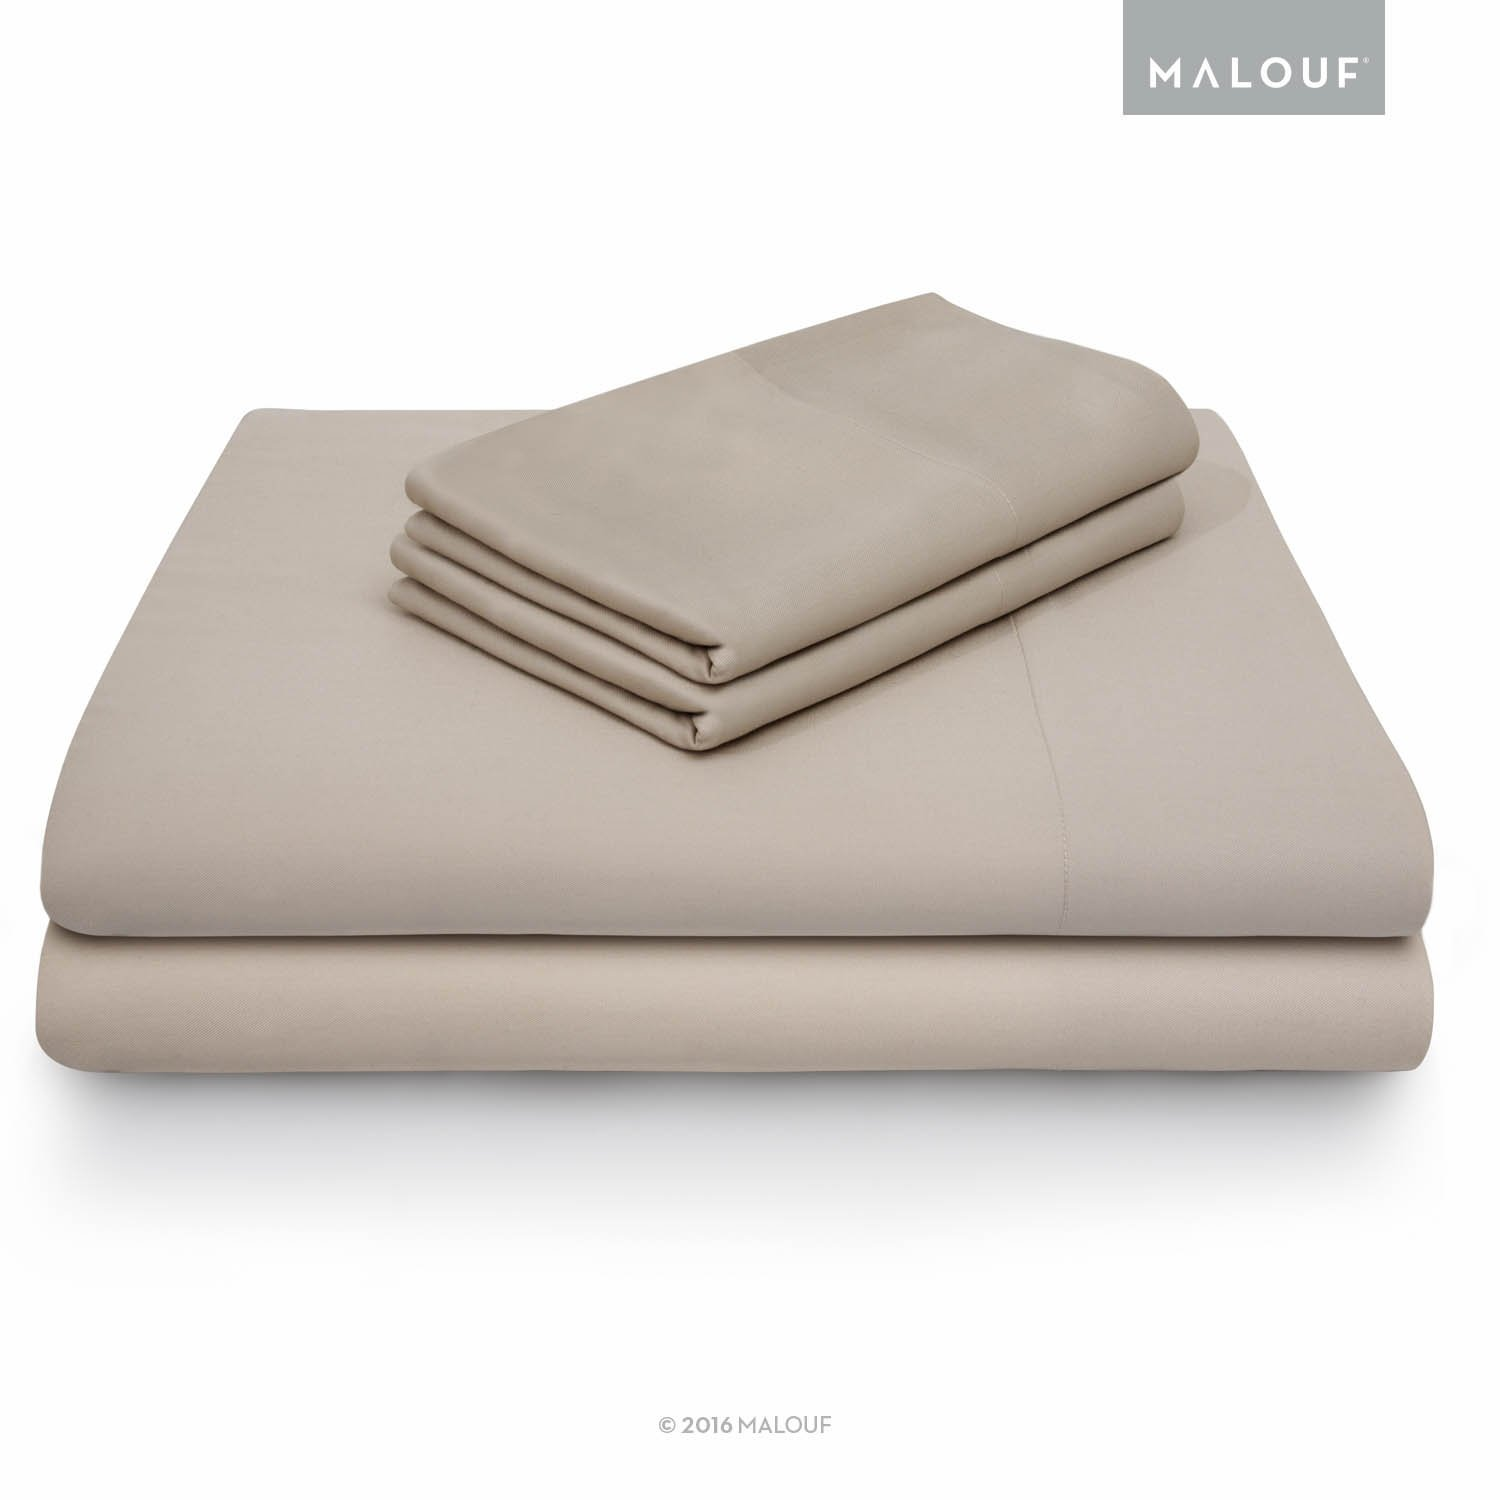 MALOUF 100% Rayon from Bamboo Sheet Set - 4-pc Set - Full XL - Driftwood